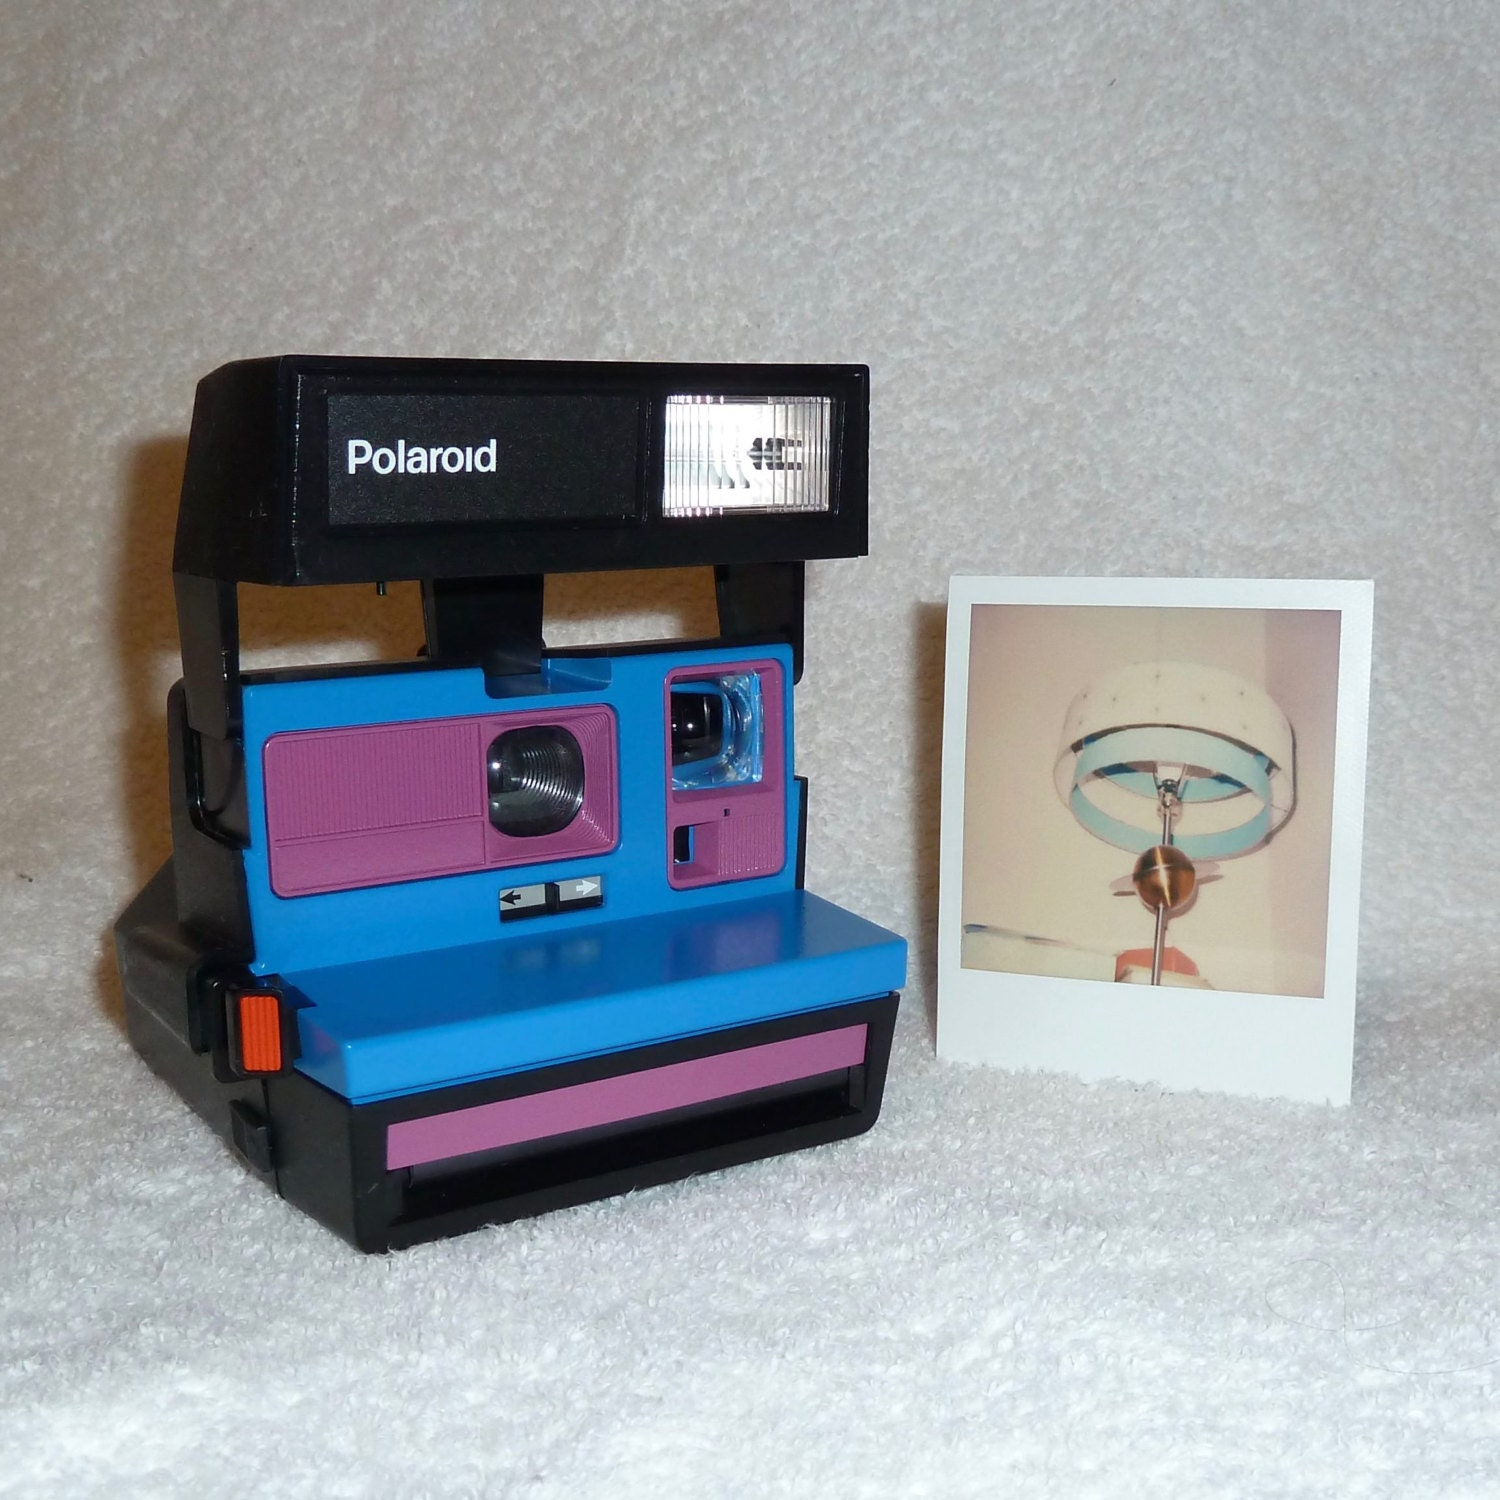 upcycled blue and purple polaroid sun 600 onestep cleaned and tested. Black Bedroom Furniture Sets. Home Design Ideas